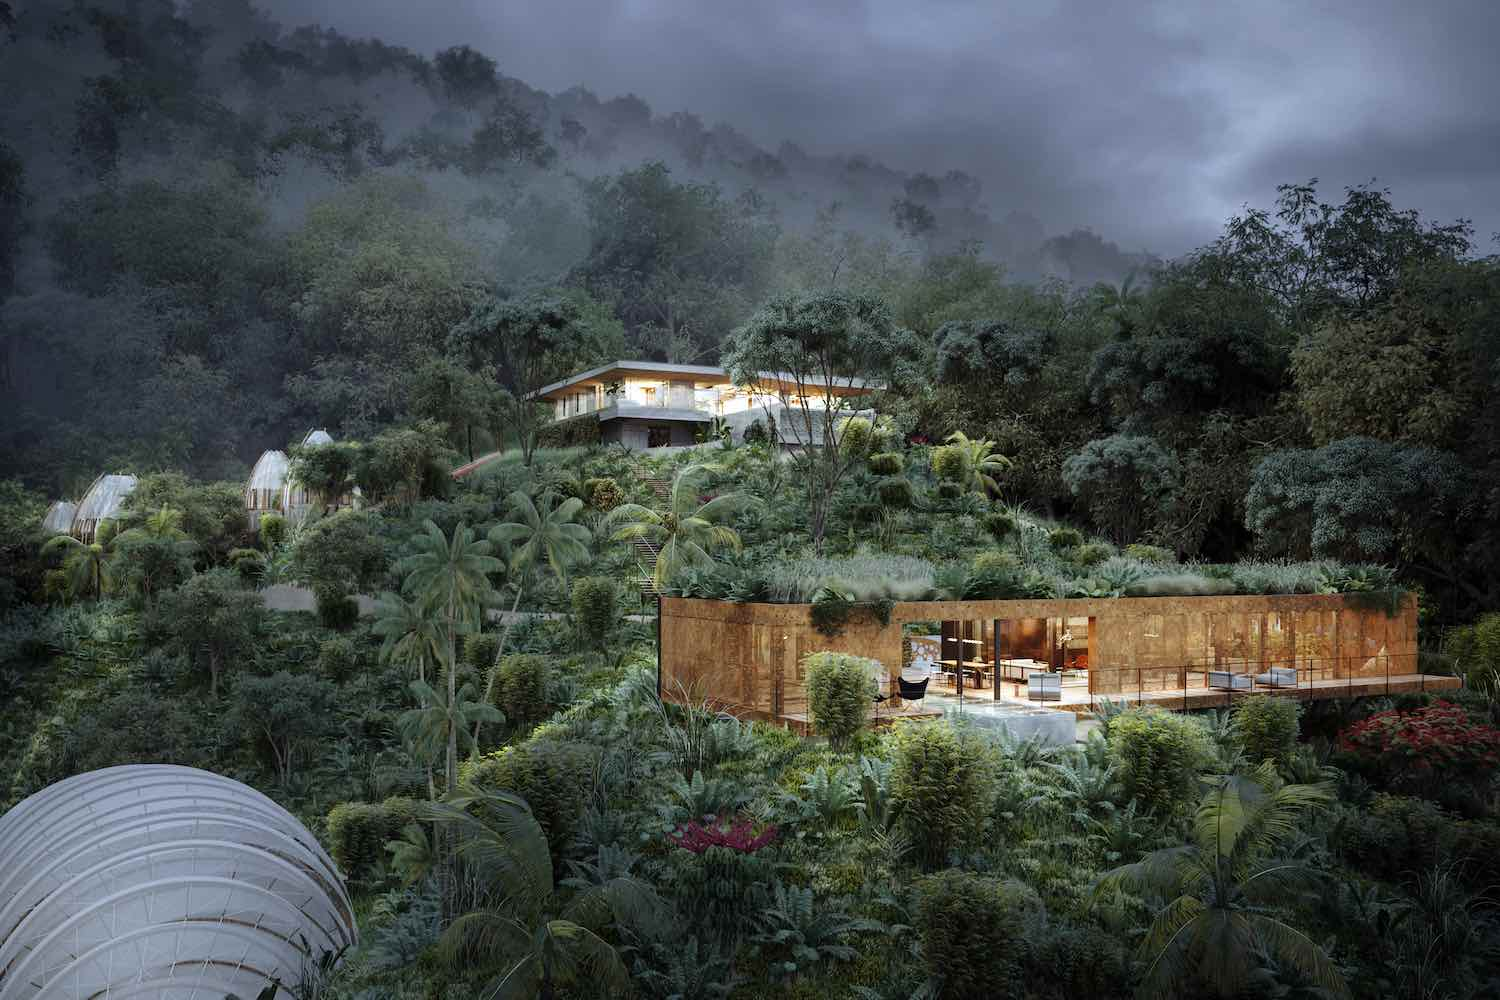 villa in the middle of jungle